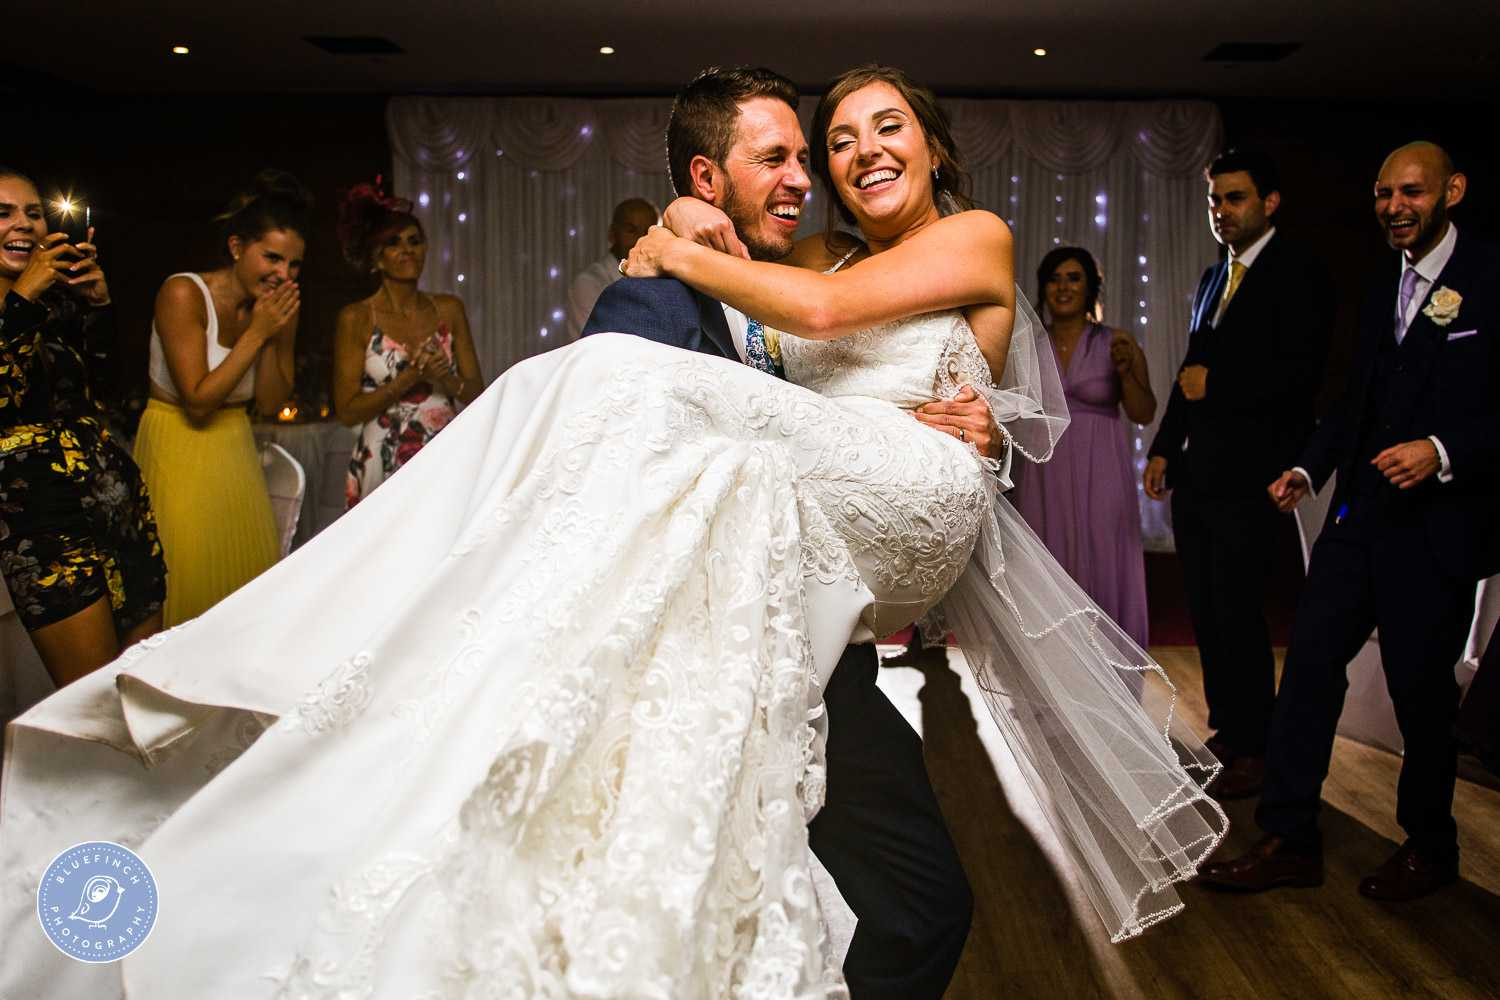 Charlotte & Daniel's Wedding Photography At Castle Bromwich Hall Hotel